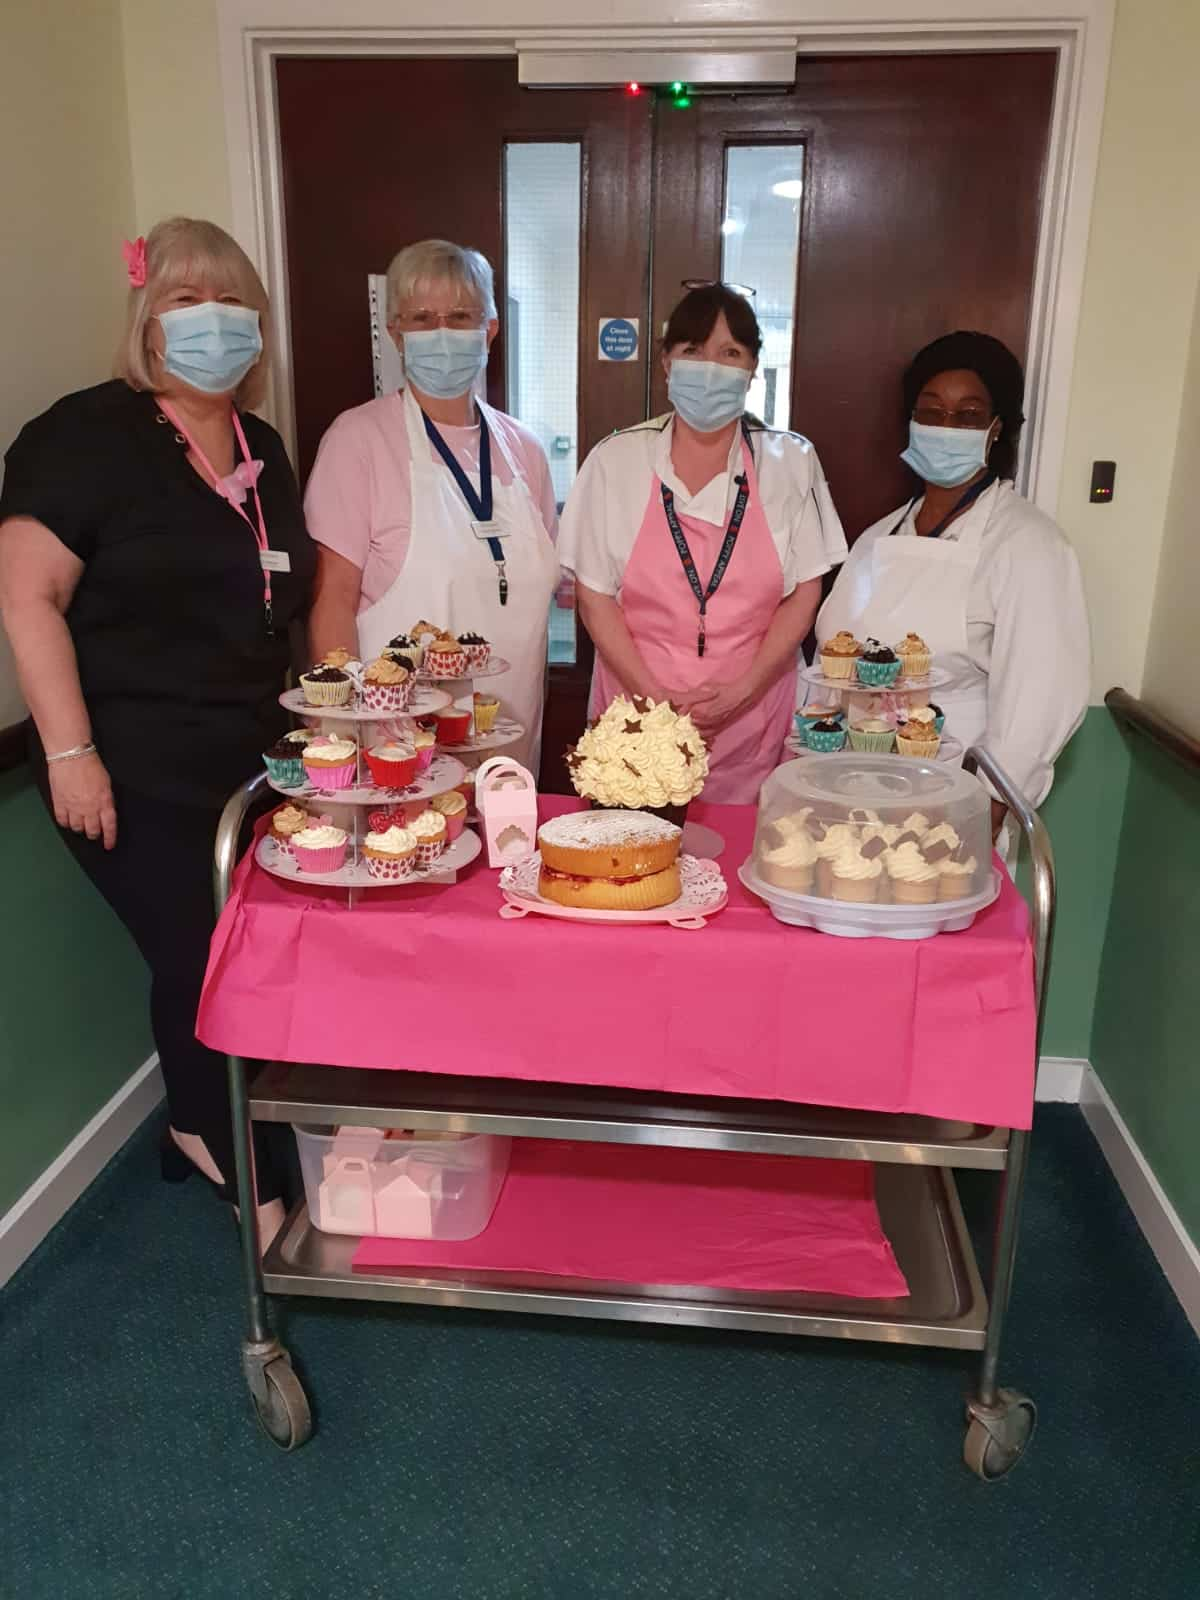 Agincare's Rochester Care Home team baked pink cakes for Wear It Pink Day